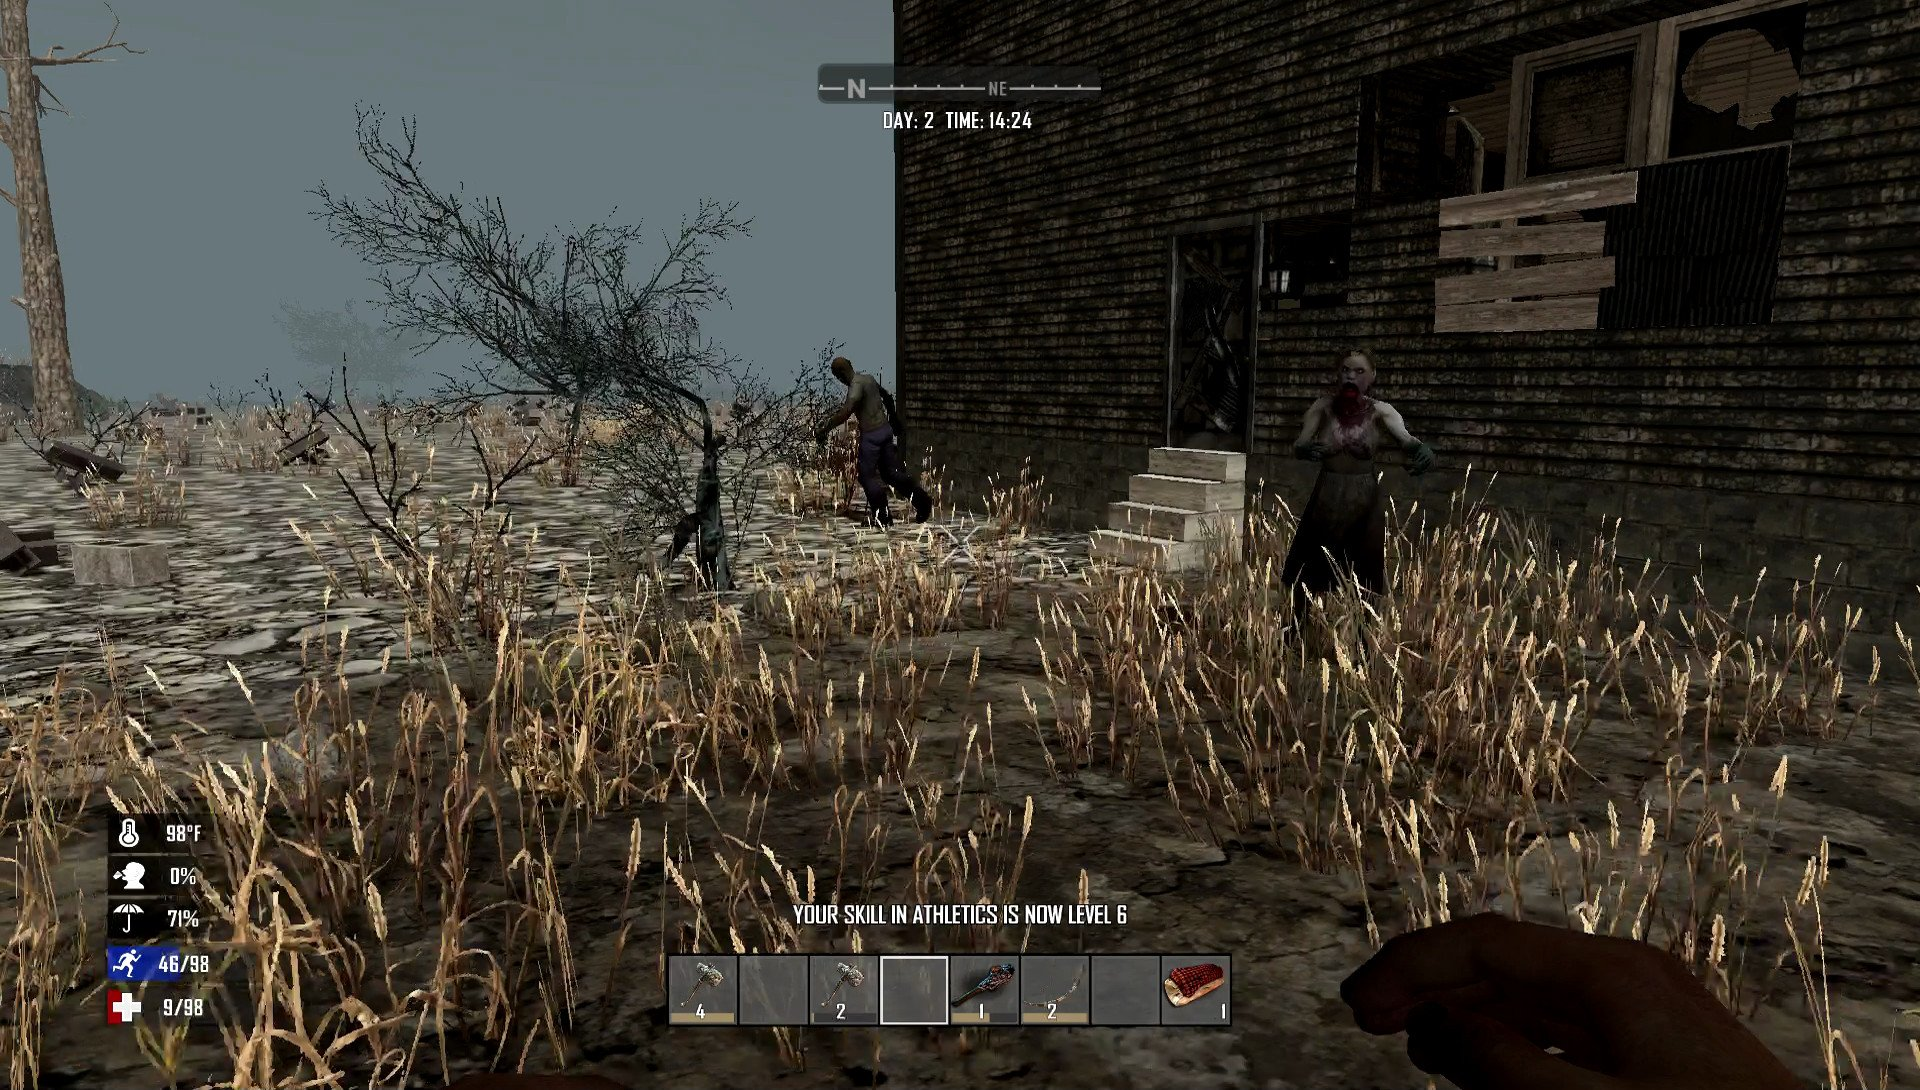 7 days to die game review